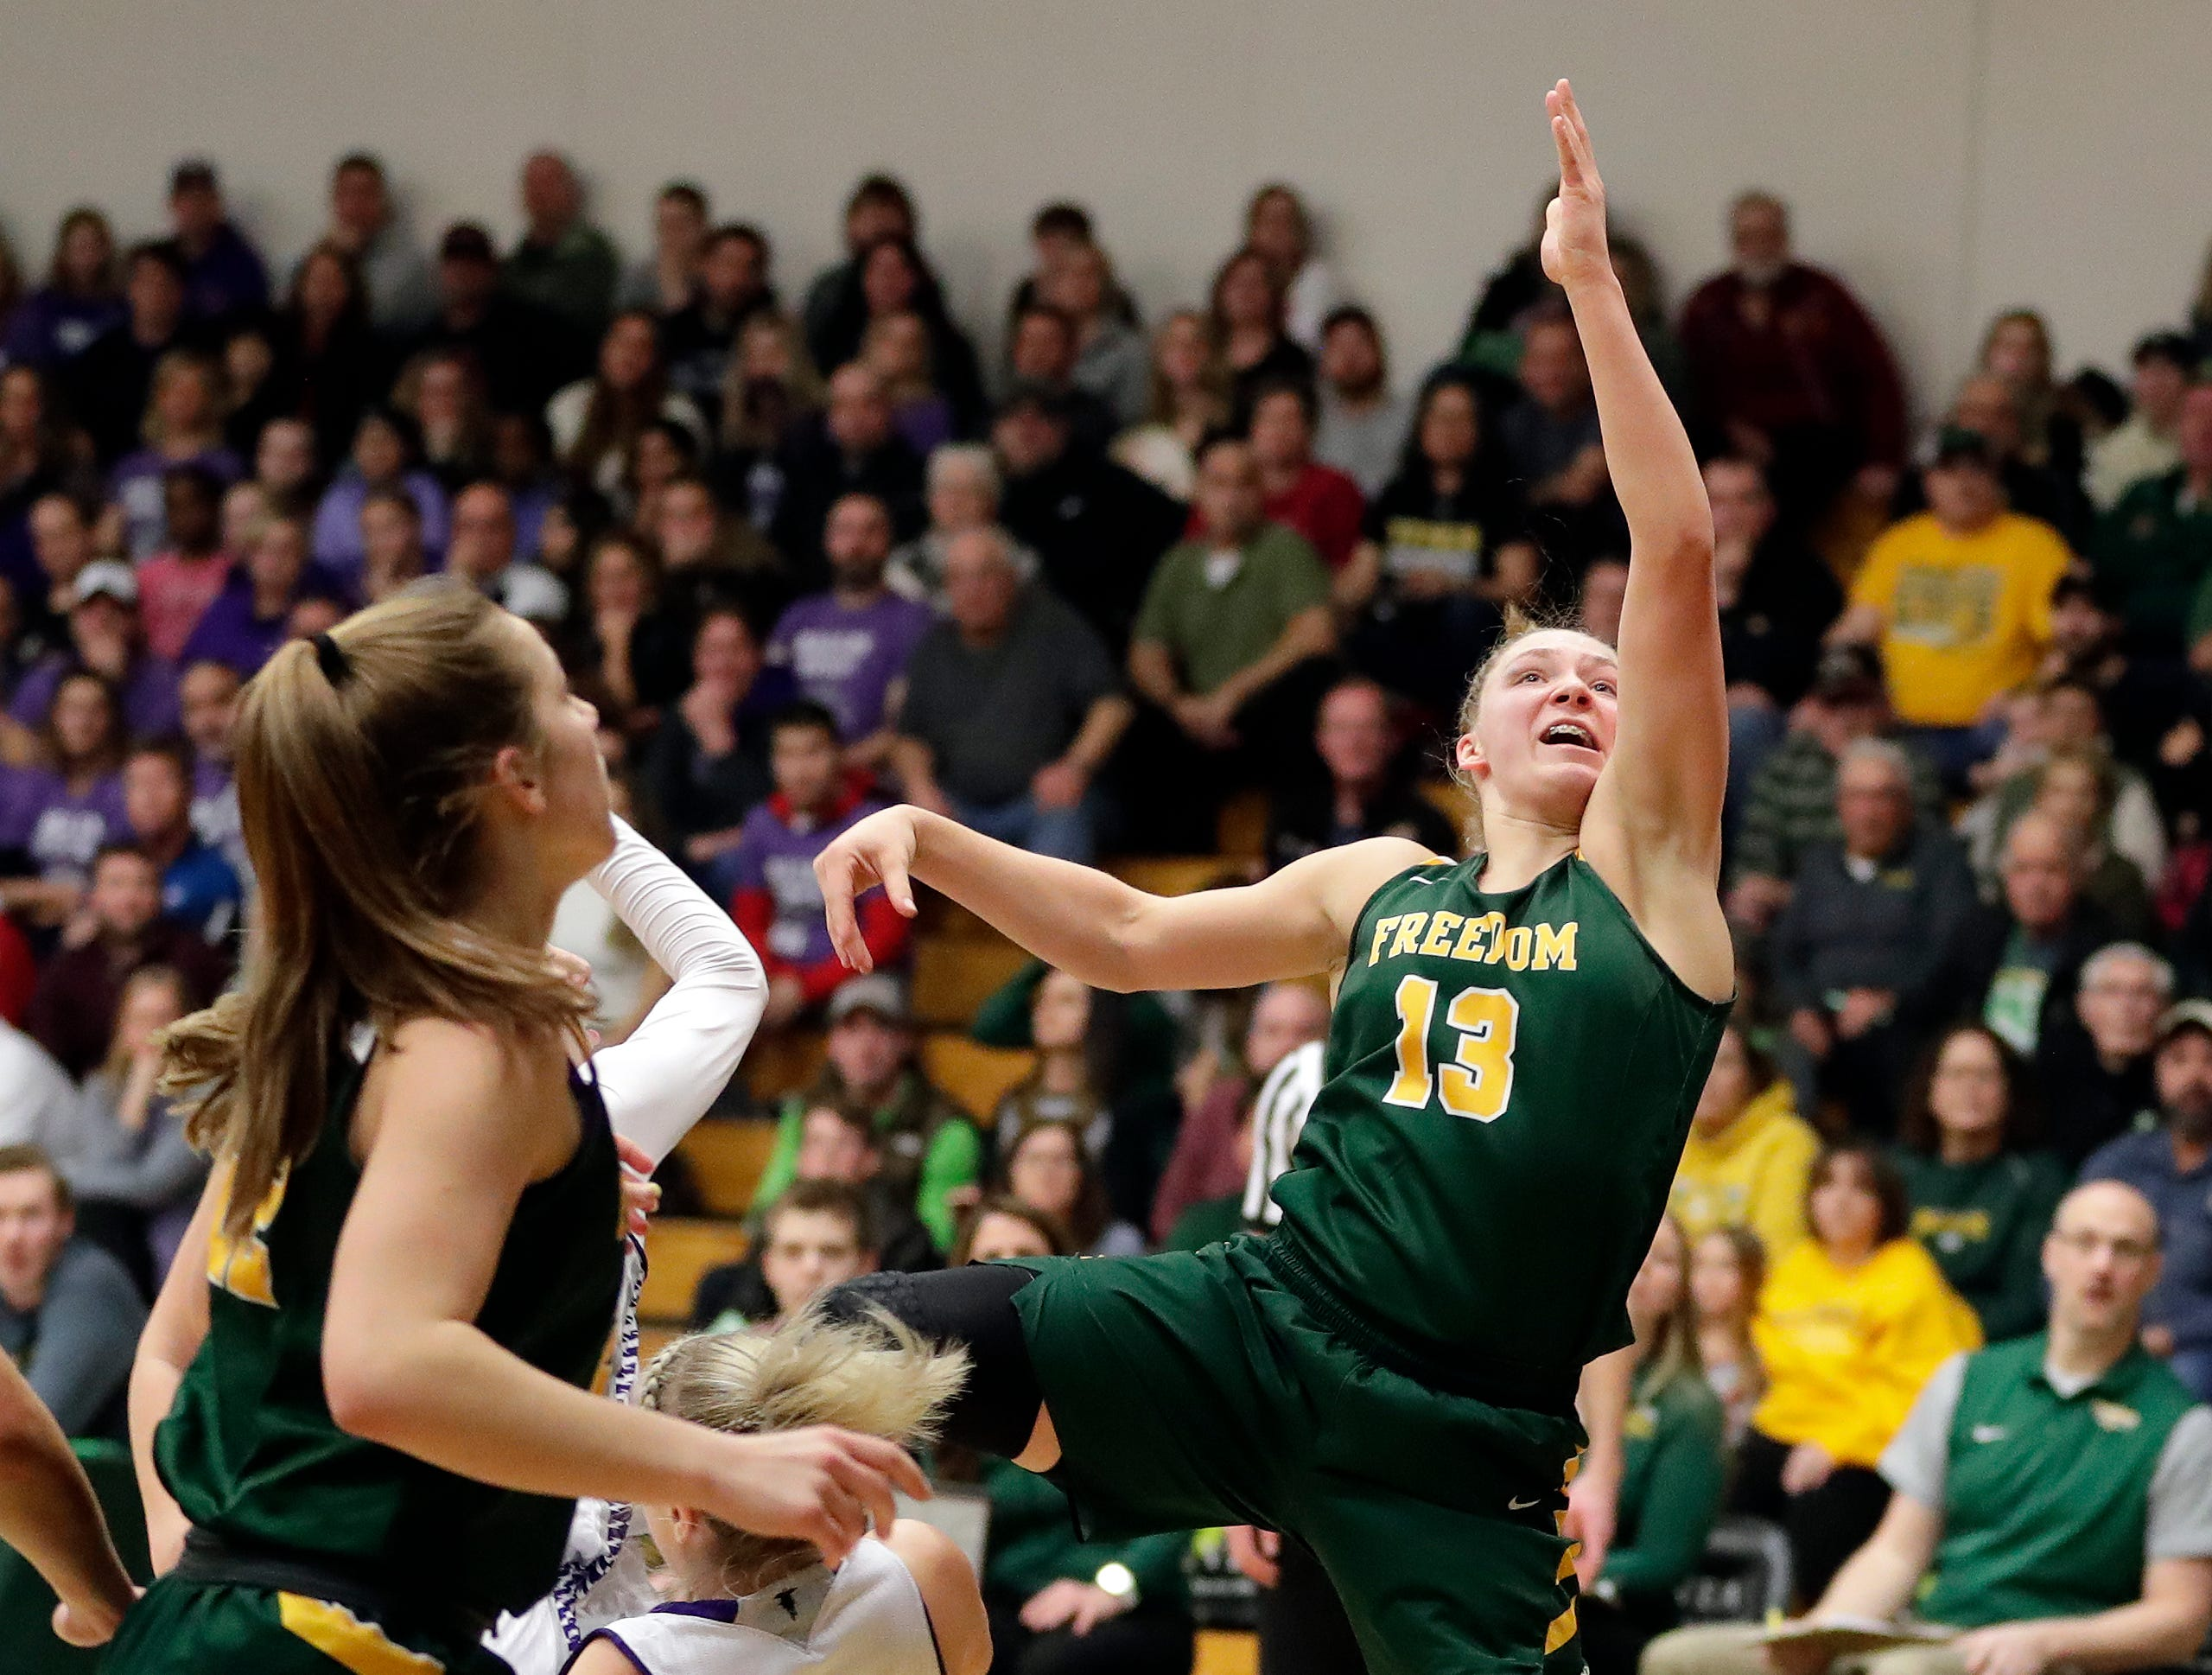 Freedom's Gabby Johnson (13) goes in for a layup during a WIAA Division 3 girls basketball sectional championship against Kiel on March 2, 2019 at Ashwaubenon High School. Freedom defeated Kiel 53-40.